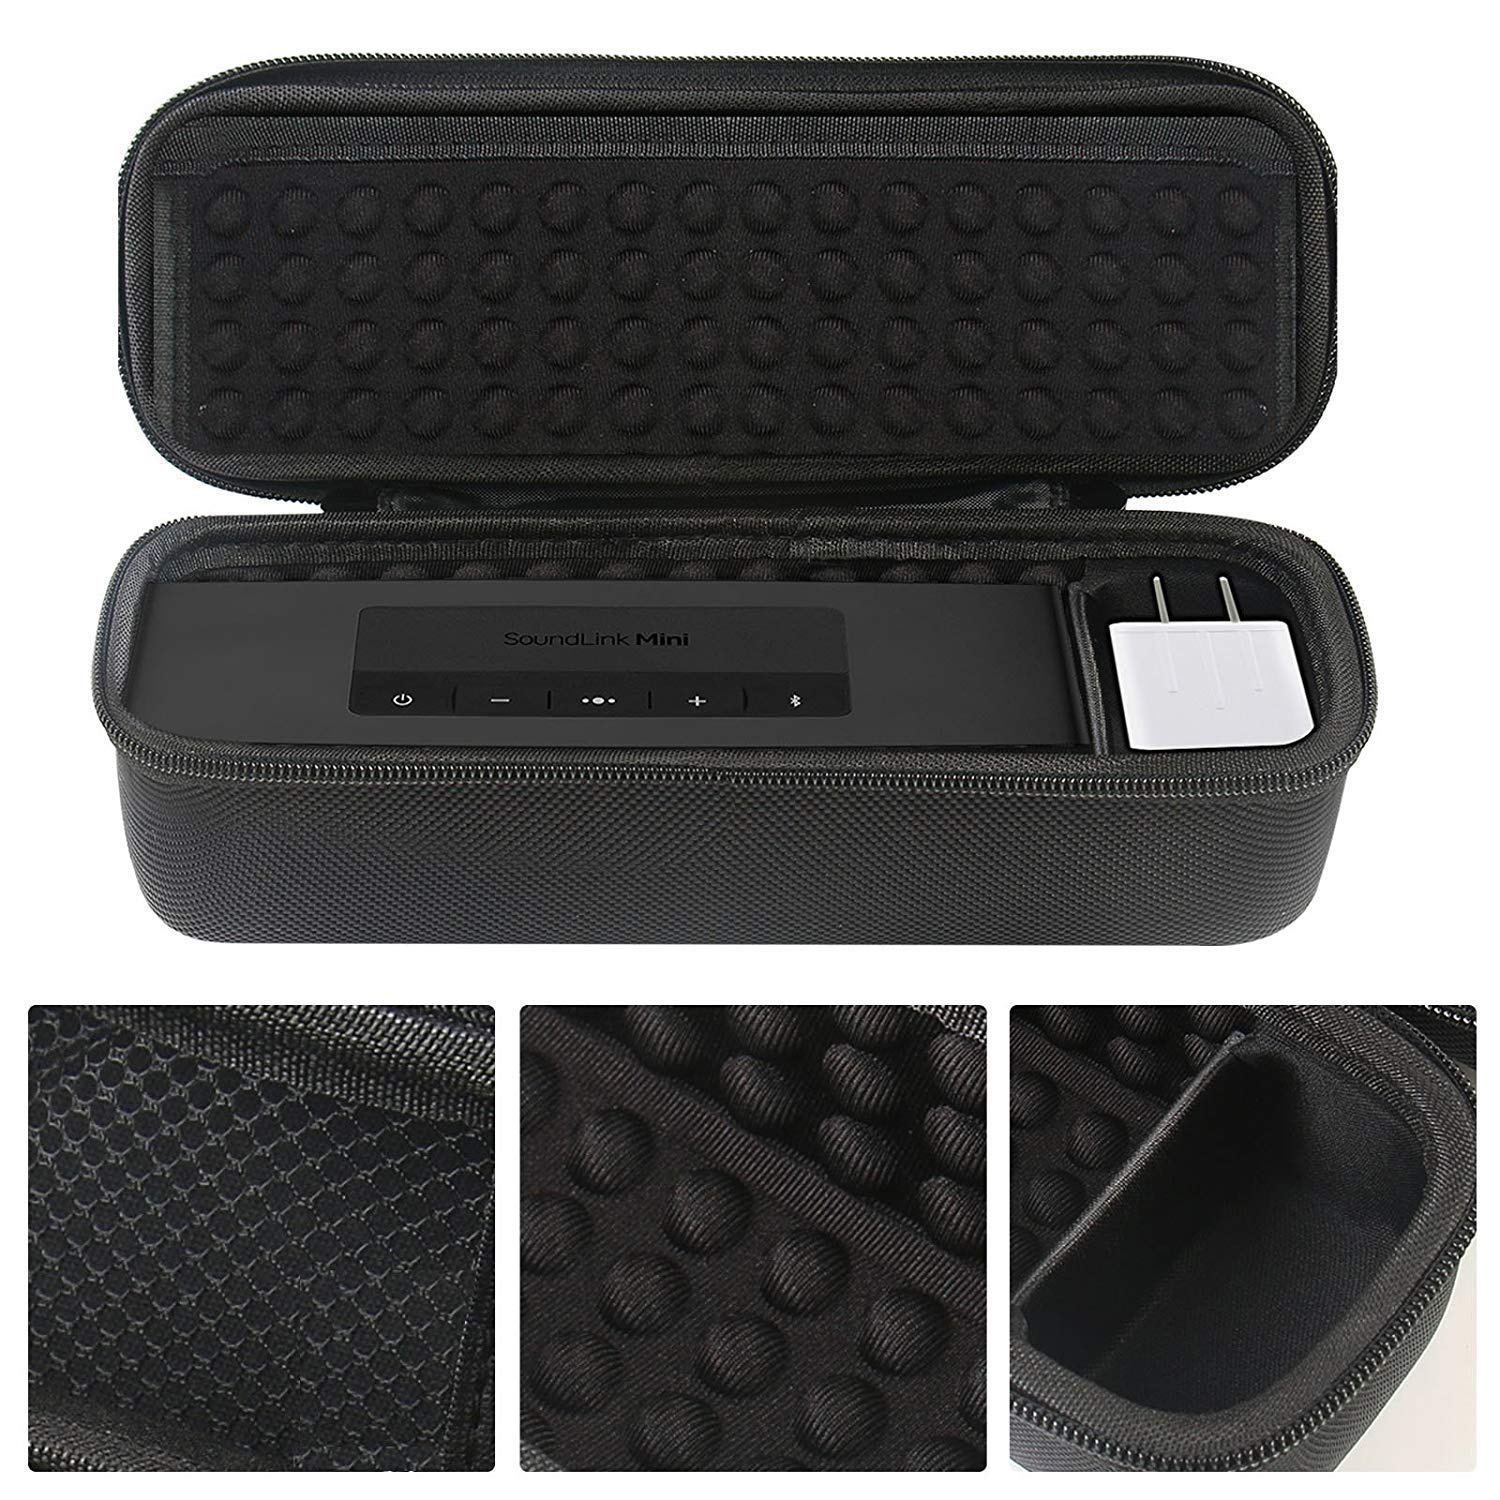 fae89da4341f PAIYULE Portable Protective Hard Case for Bose Soundlink Mini II Bluetooth  Speaker & Charger/Cable Accessories- Carbon